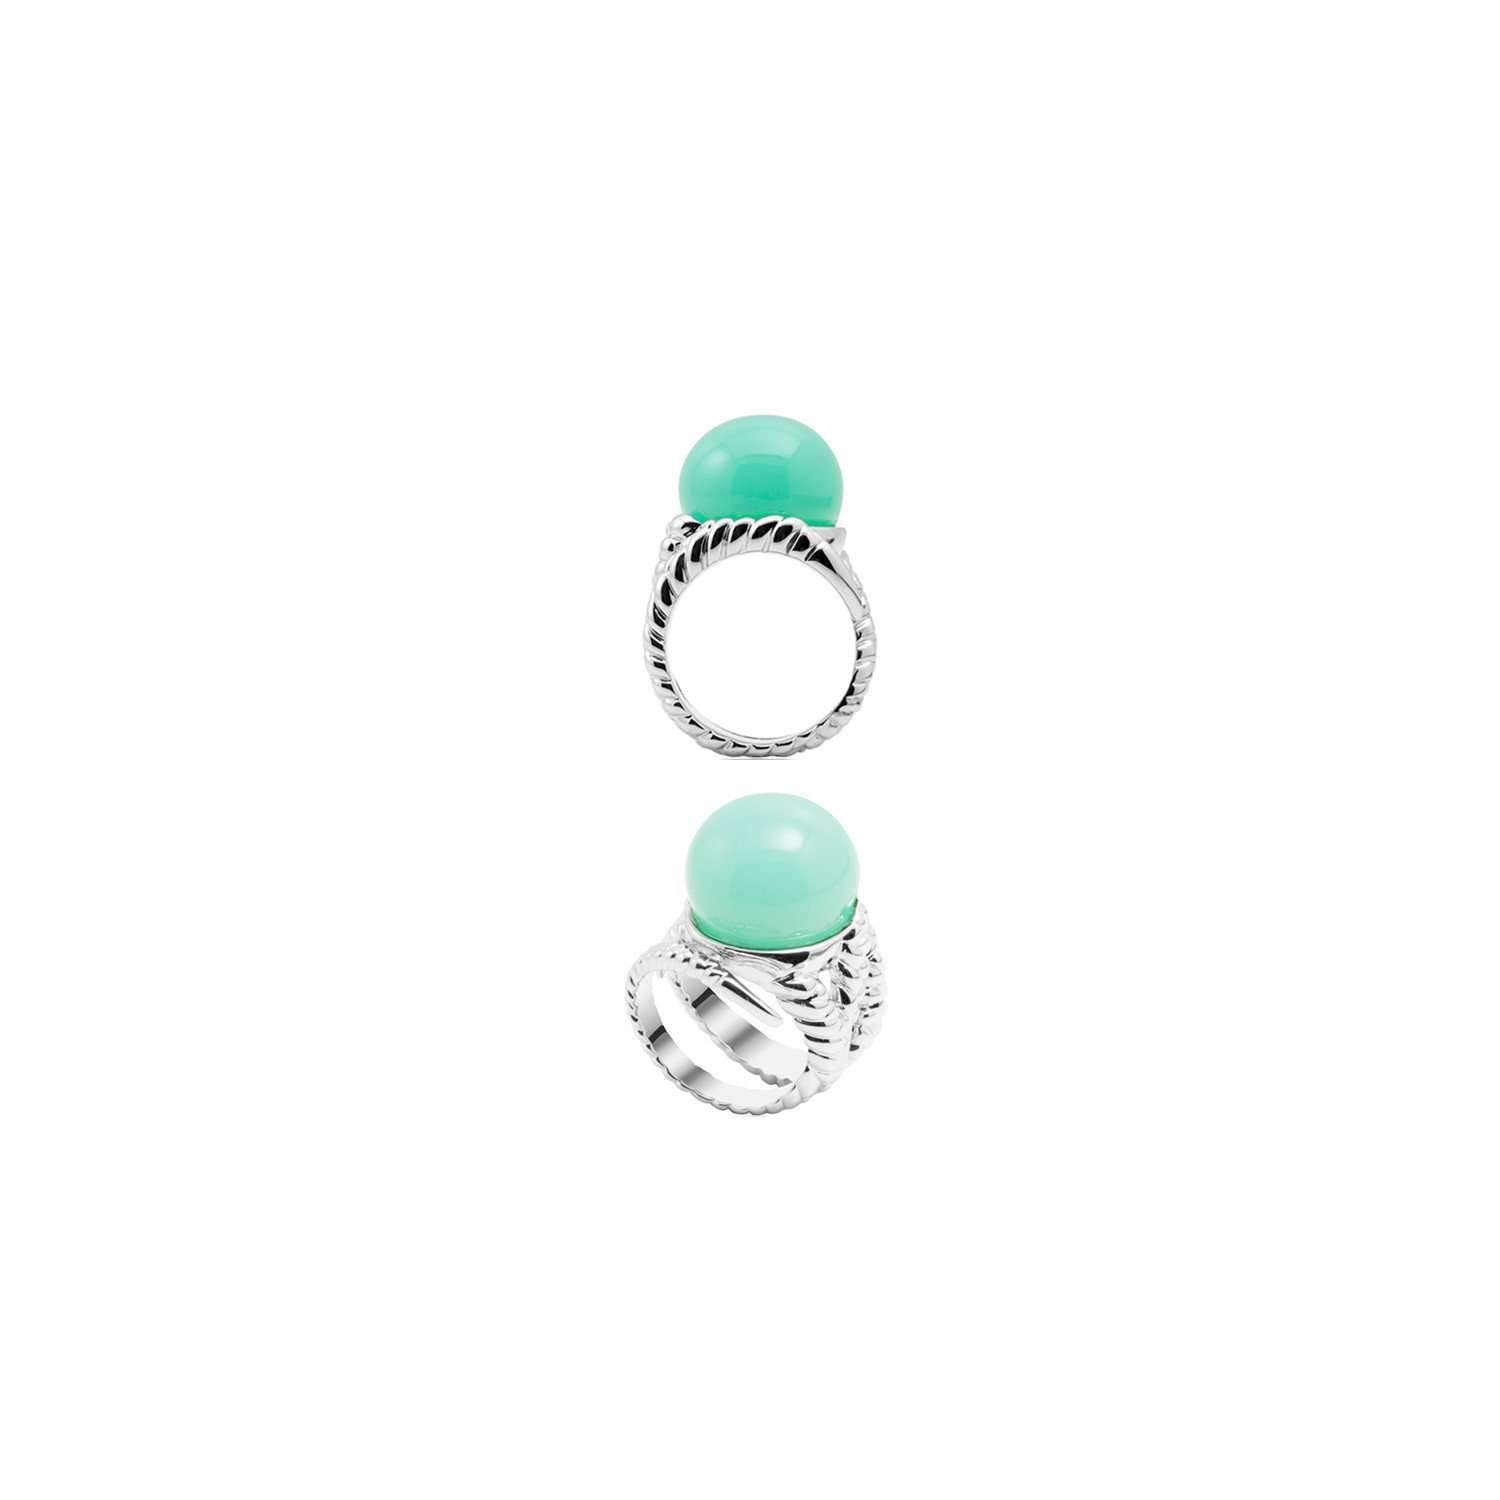 Mint braid ring